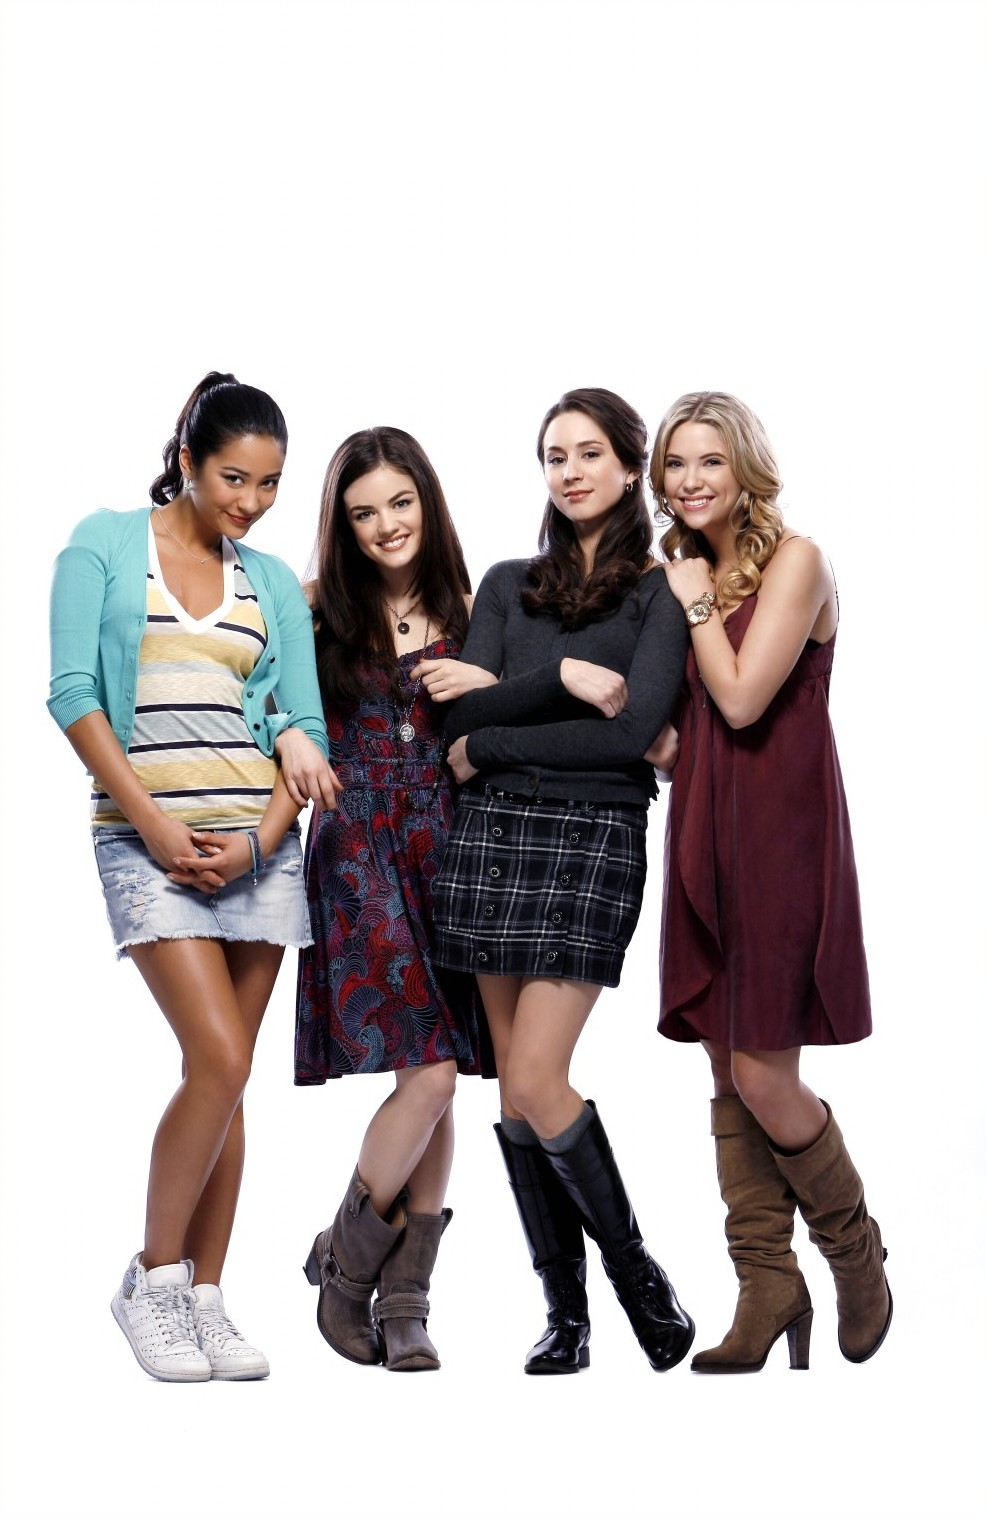 pretty little liars 1 Ali's white floral v-neck dress and purple suede jacket on pretty little liars emily's yellow graphic tee and leather skirt on pretty little liars.